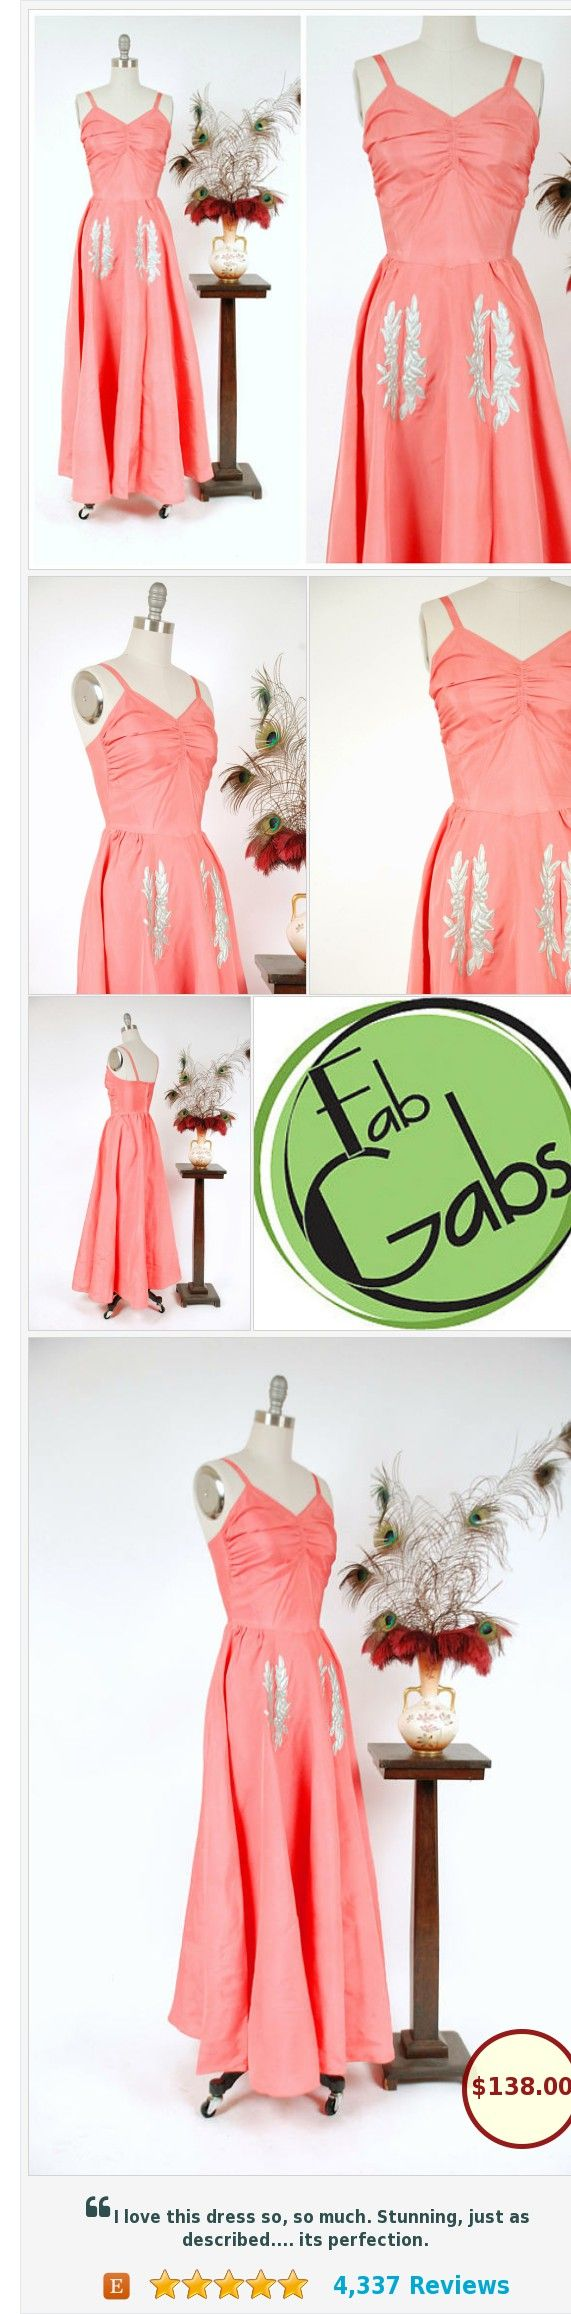 Vintage 1930s Dress - Gorgeous Coral Pink Acetate Summer Party Dress #etsy @fabgabsvintage https://www.etsy.com/FabGabs/listing/524022324/vintage-1930s-dress-gorgeous-coral-pink?ref=shop_home_active_15